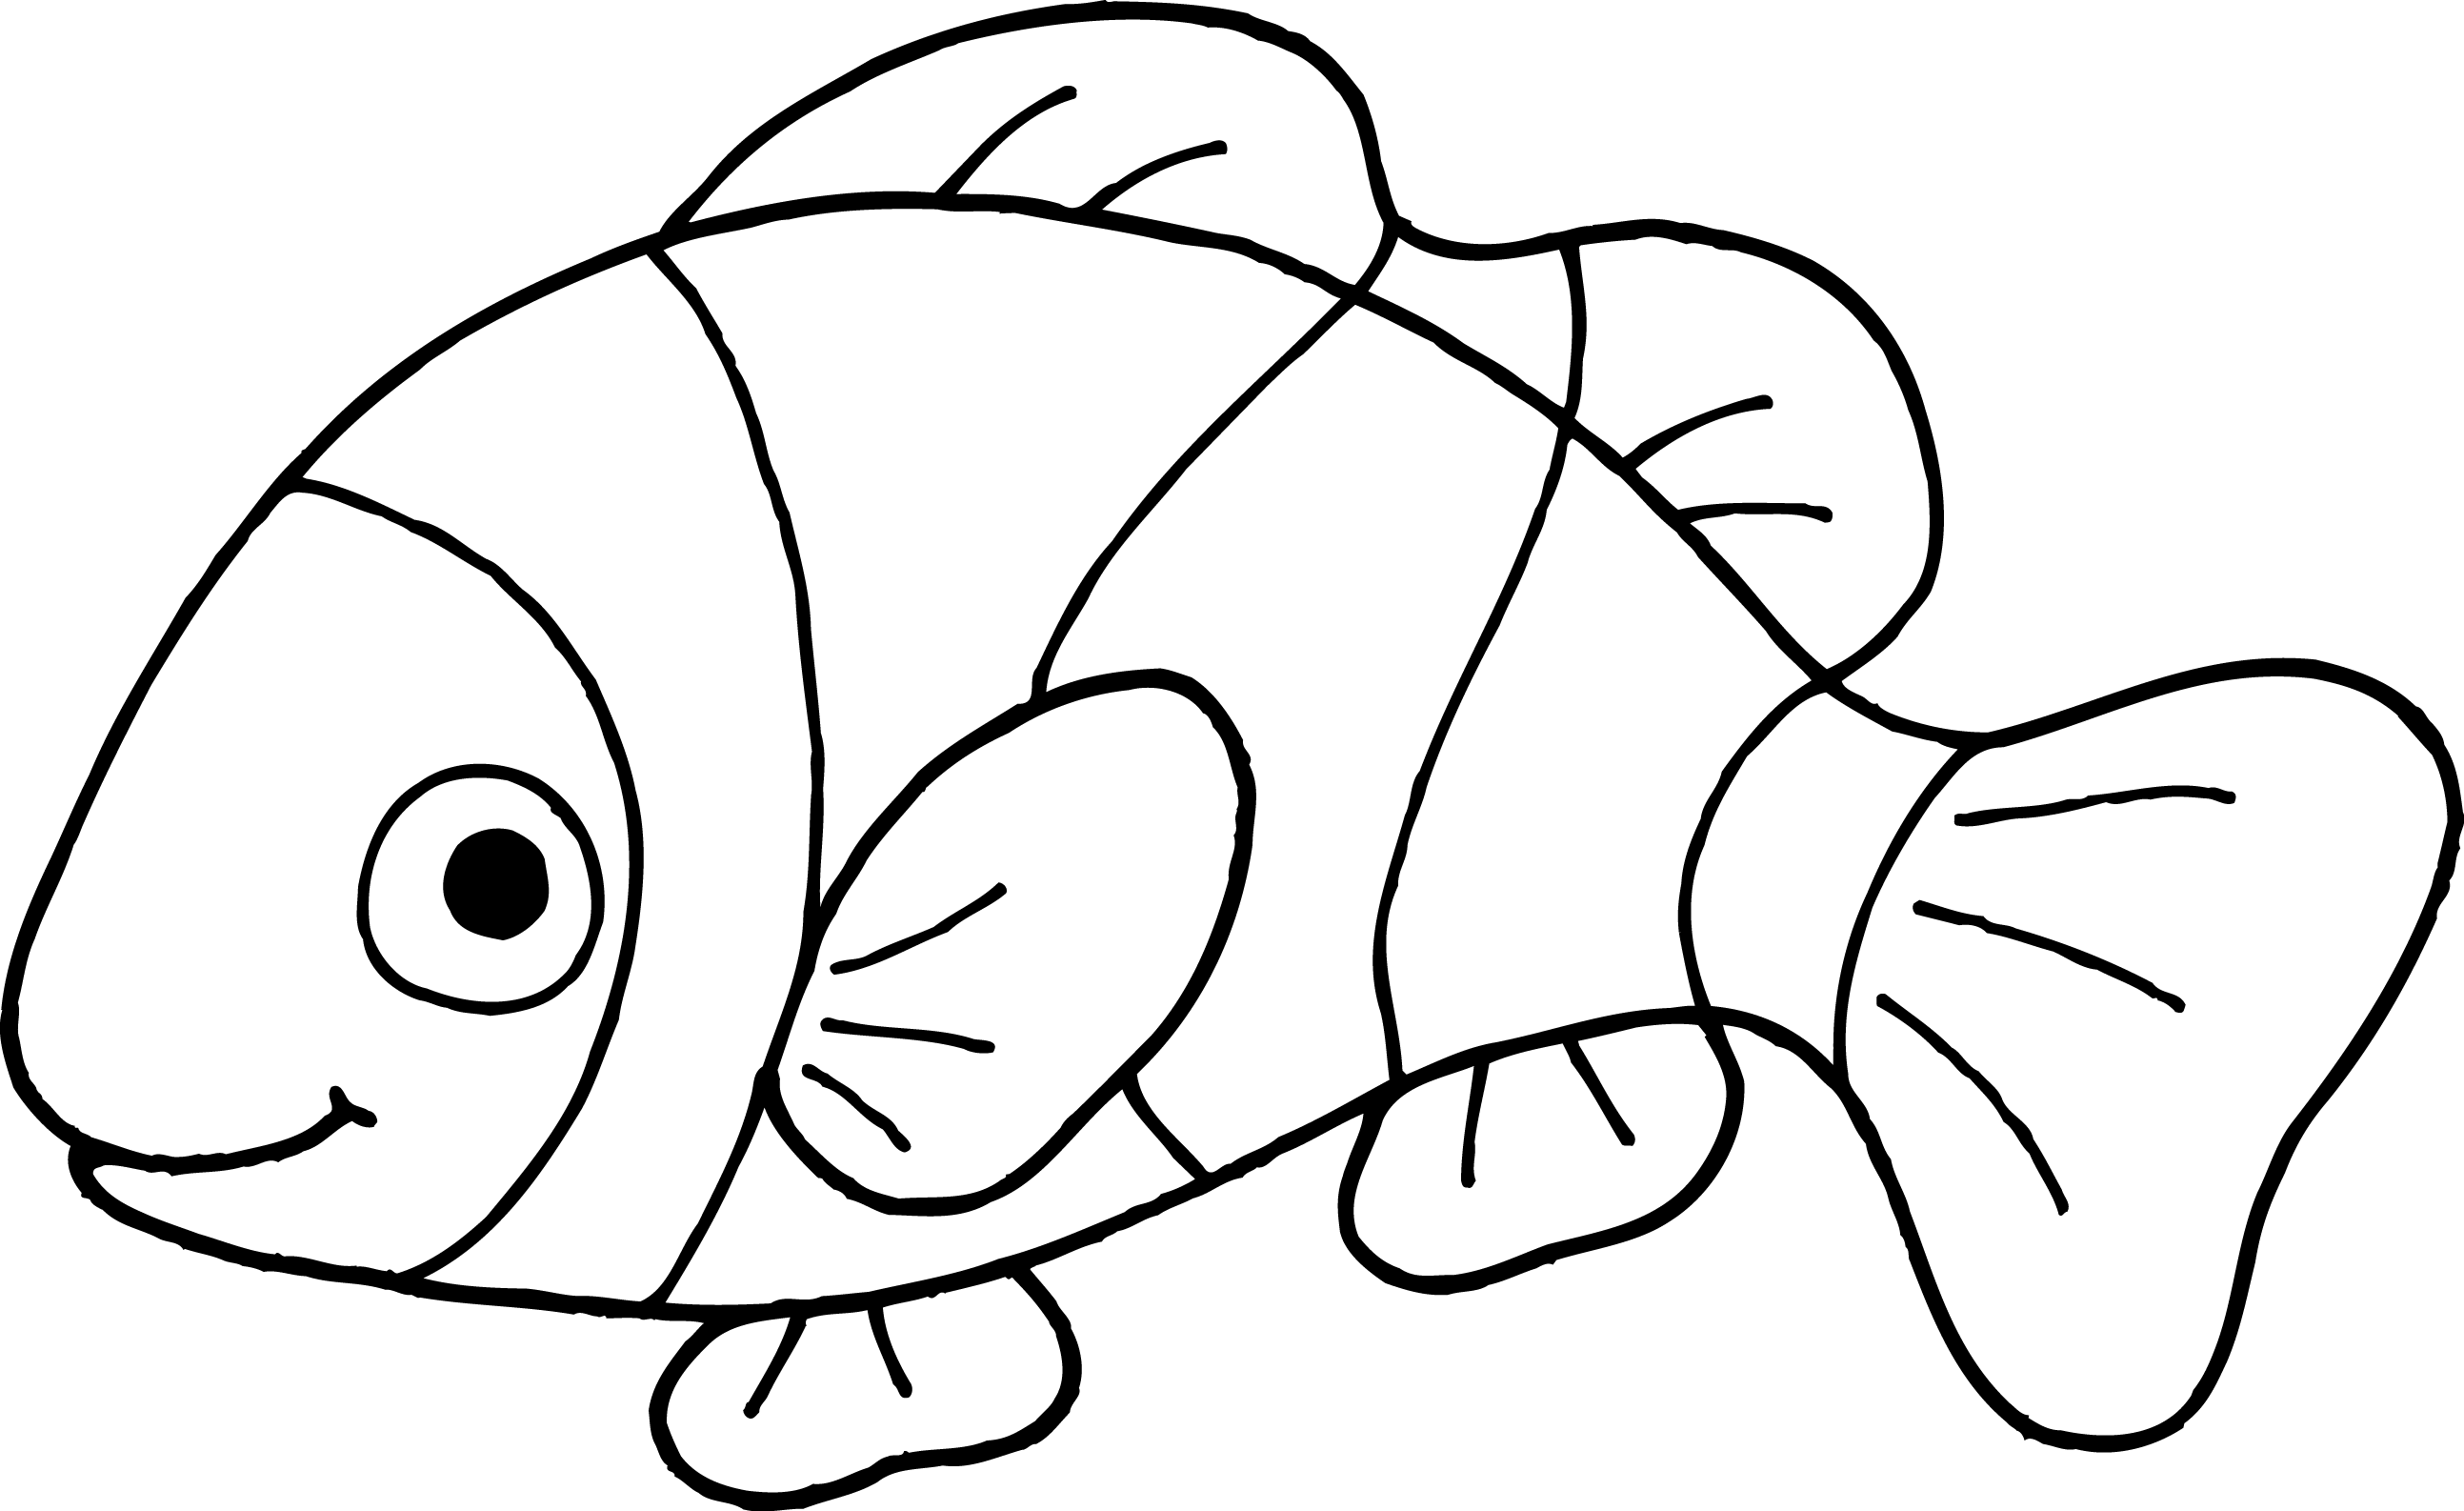 Fish Clip Art Black And White - ClipArt Best